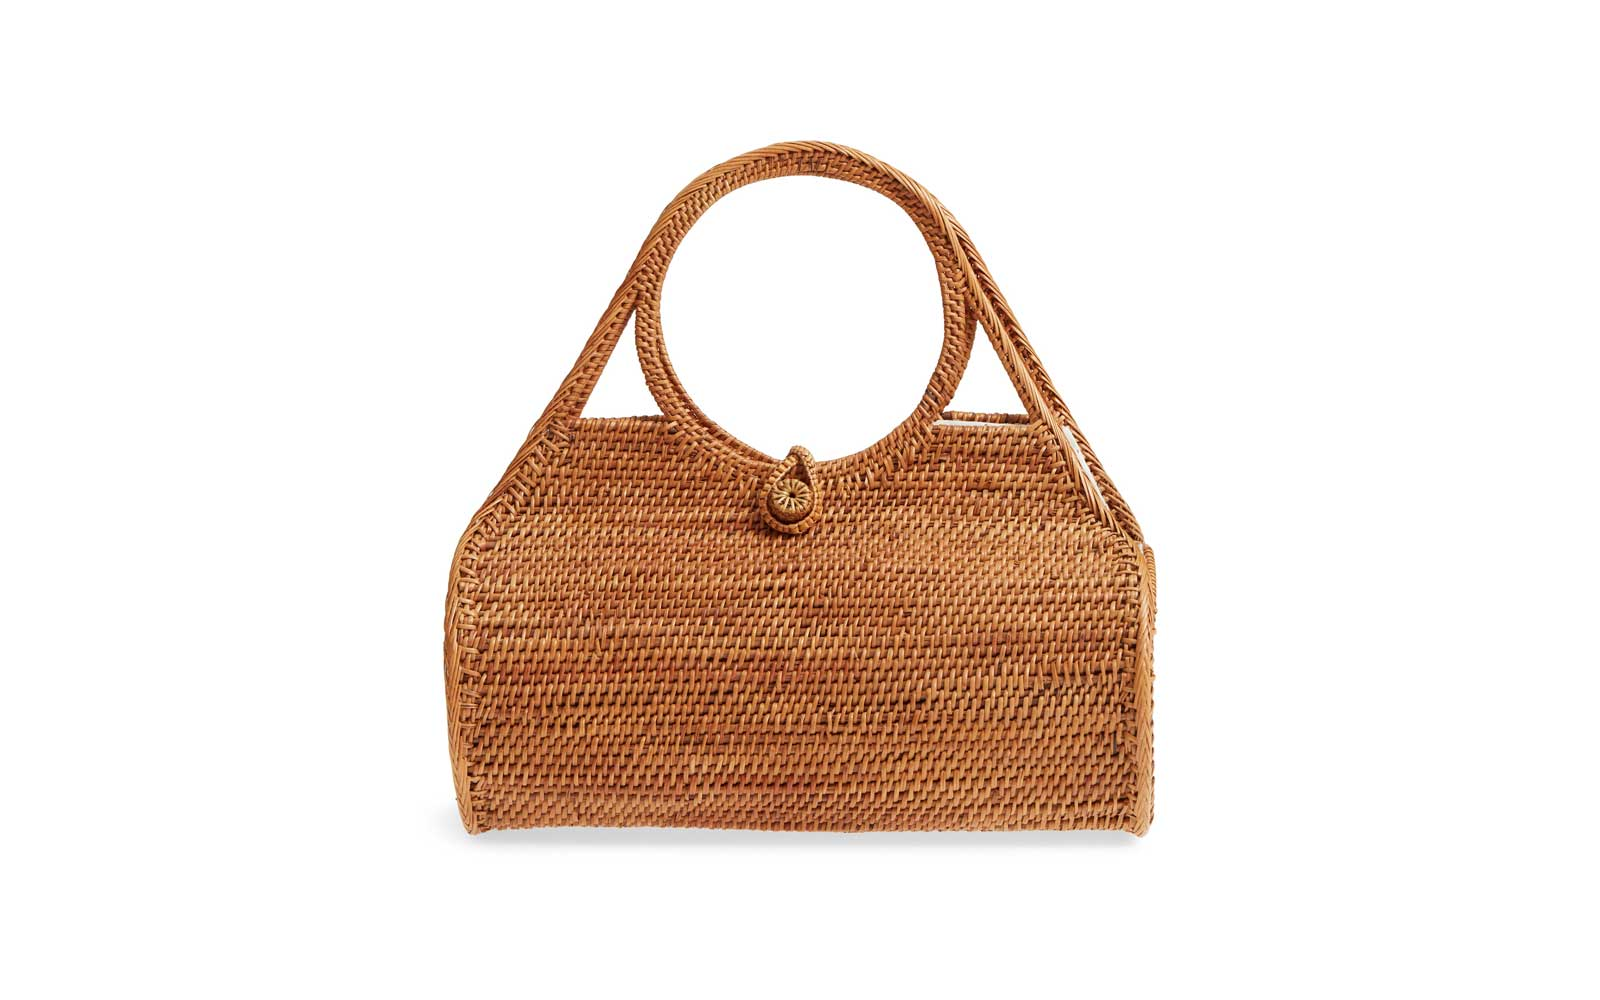 17 Cute Straw Bags - Crossbody 92b24376d6577